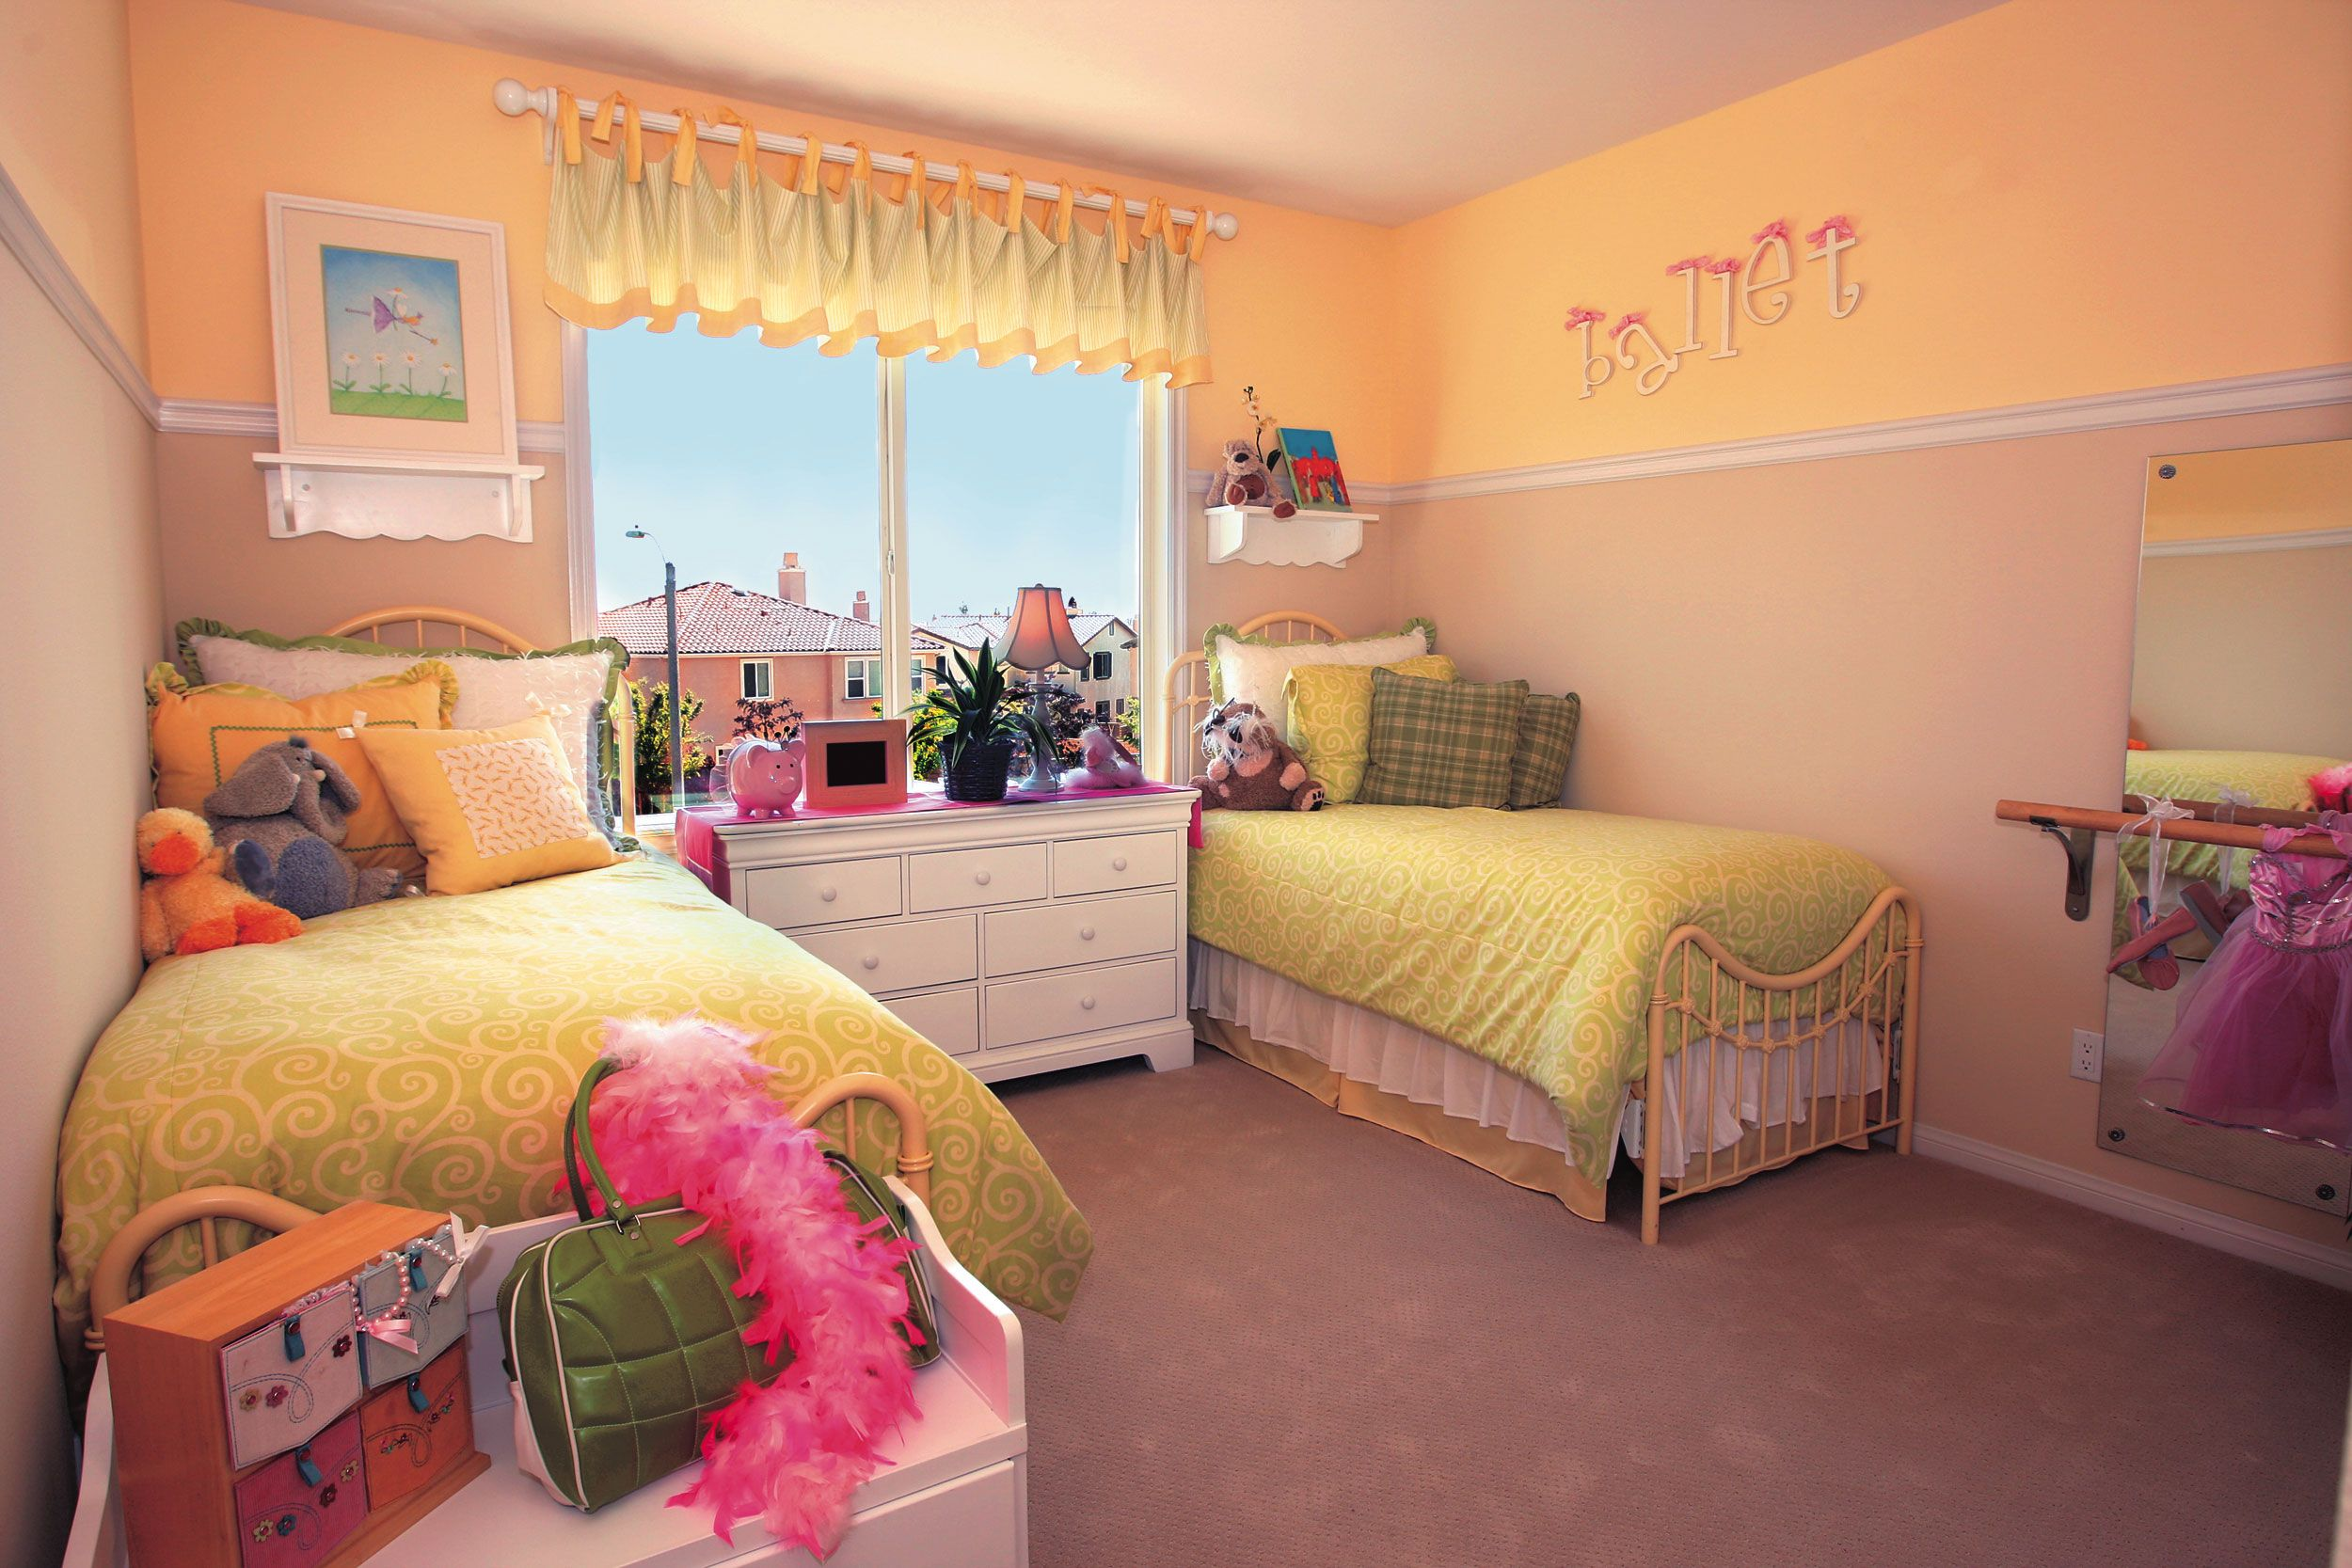 1000 images about Children 39 s bed room on Pinterest. Child Bedroom